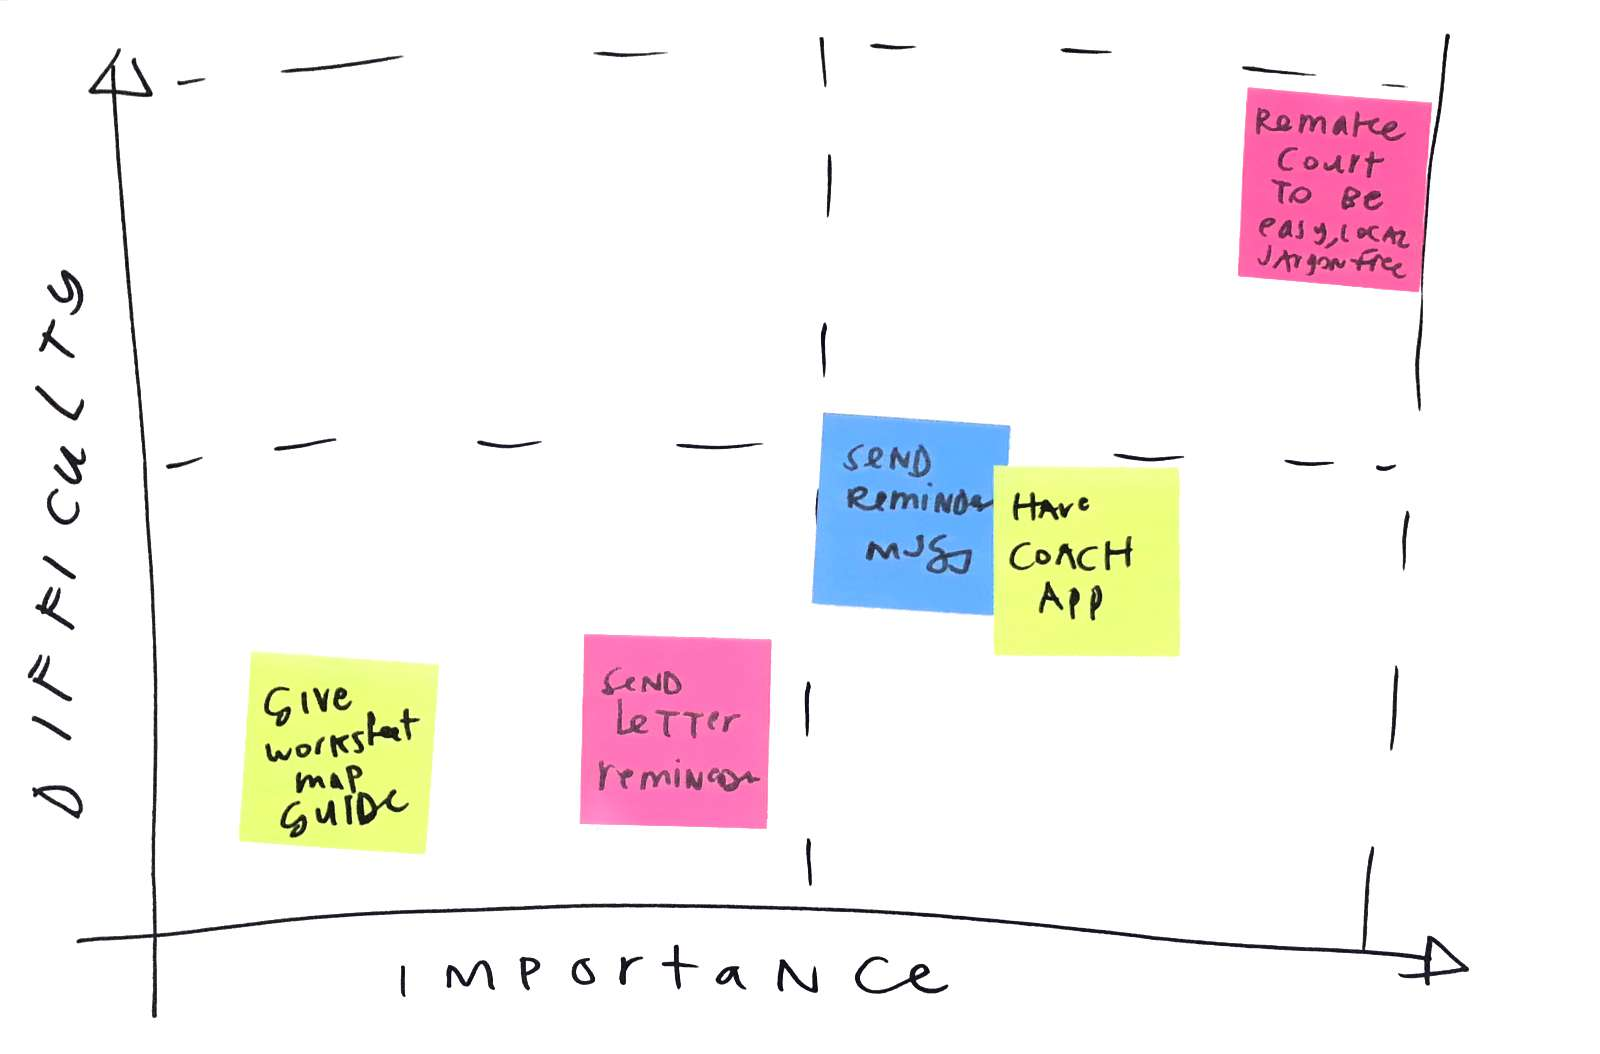 Importance vs Difficulty of ideas